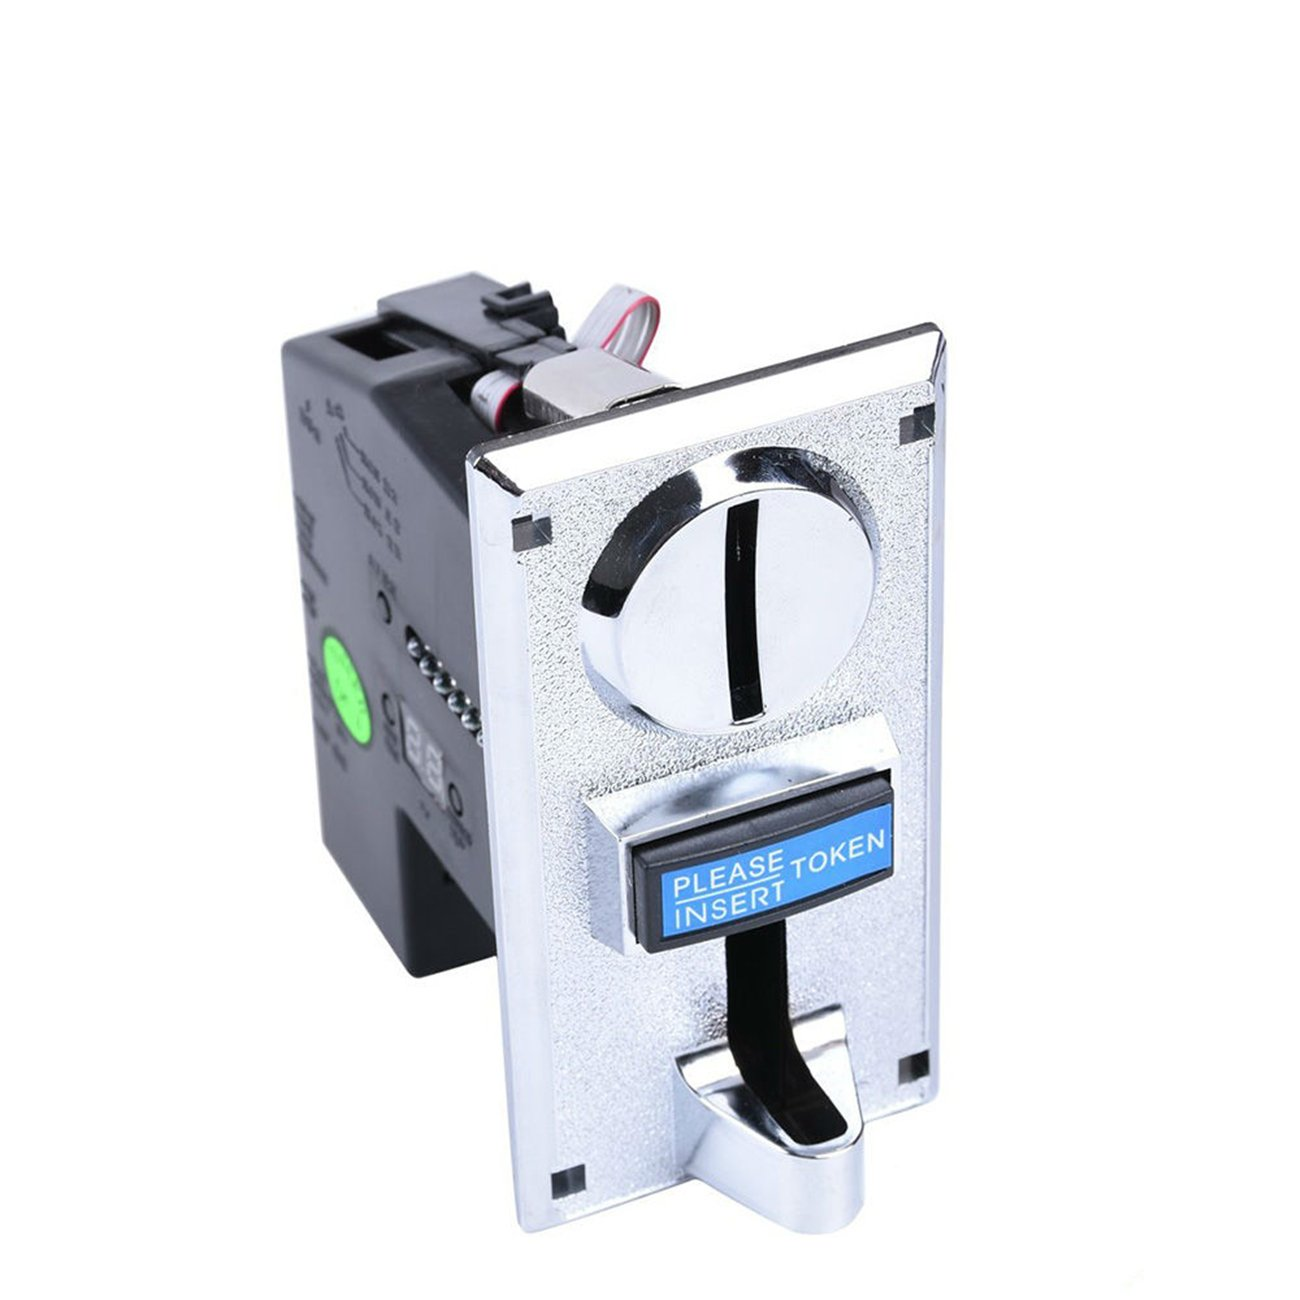 Hangang Coin Acceptor, 6 Kinds Different Coin Operated,Coin Selector Support Multi Signal Output,for Arcade Video Games Vending Machine Etc